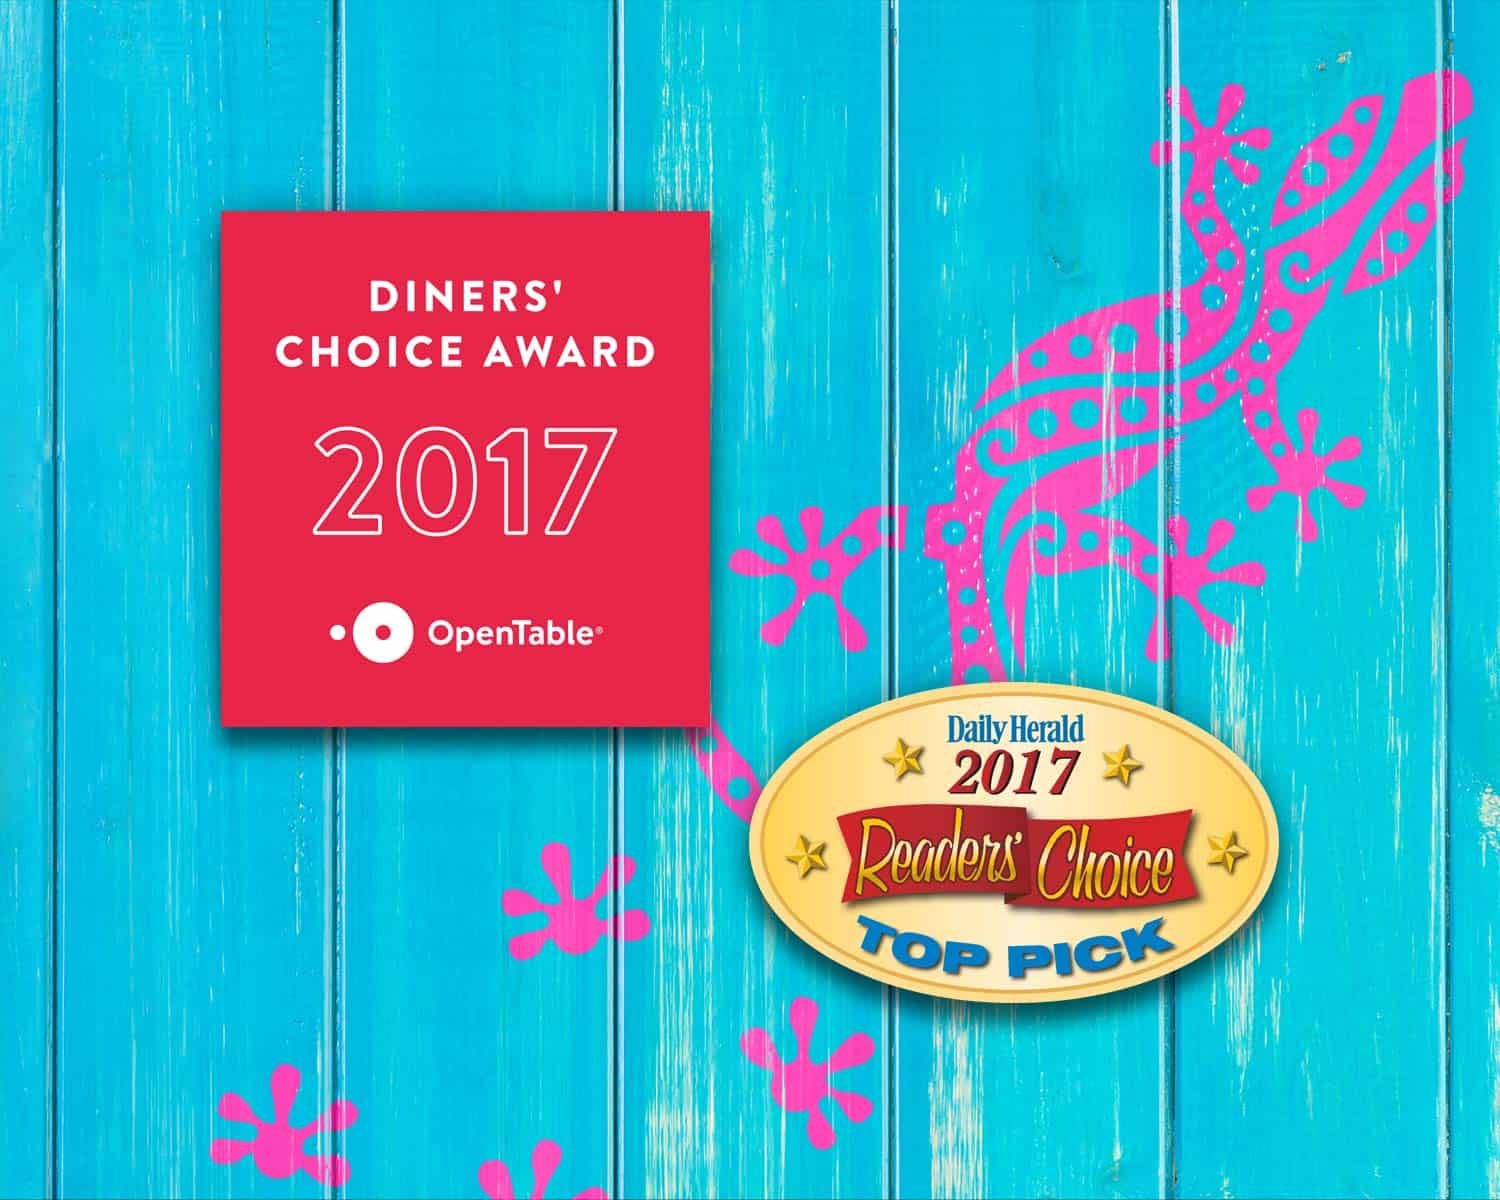 Open Table Diners Choice/Daily Herald Readers Choice